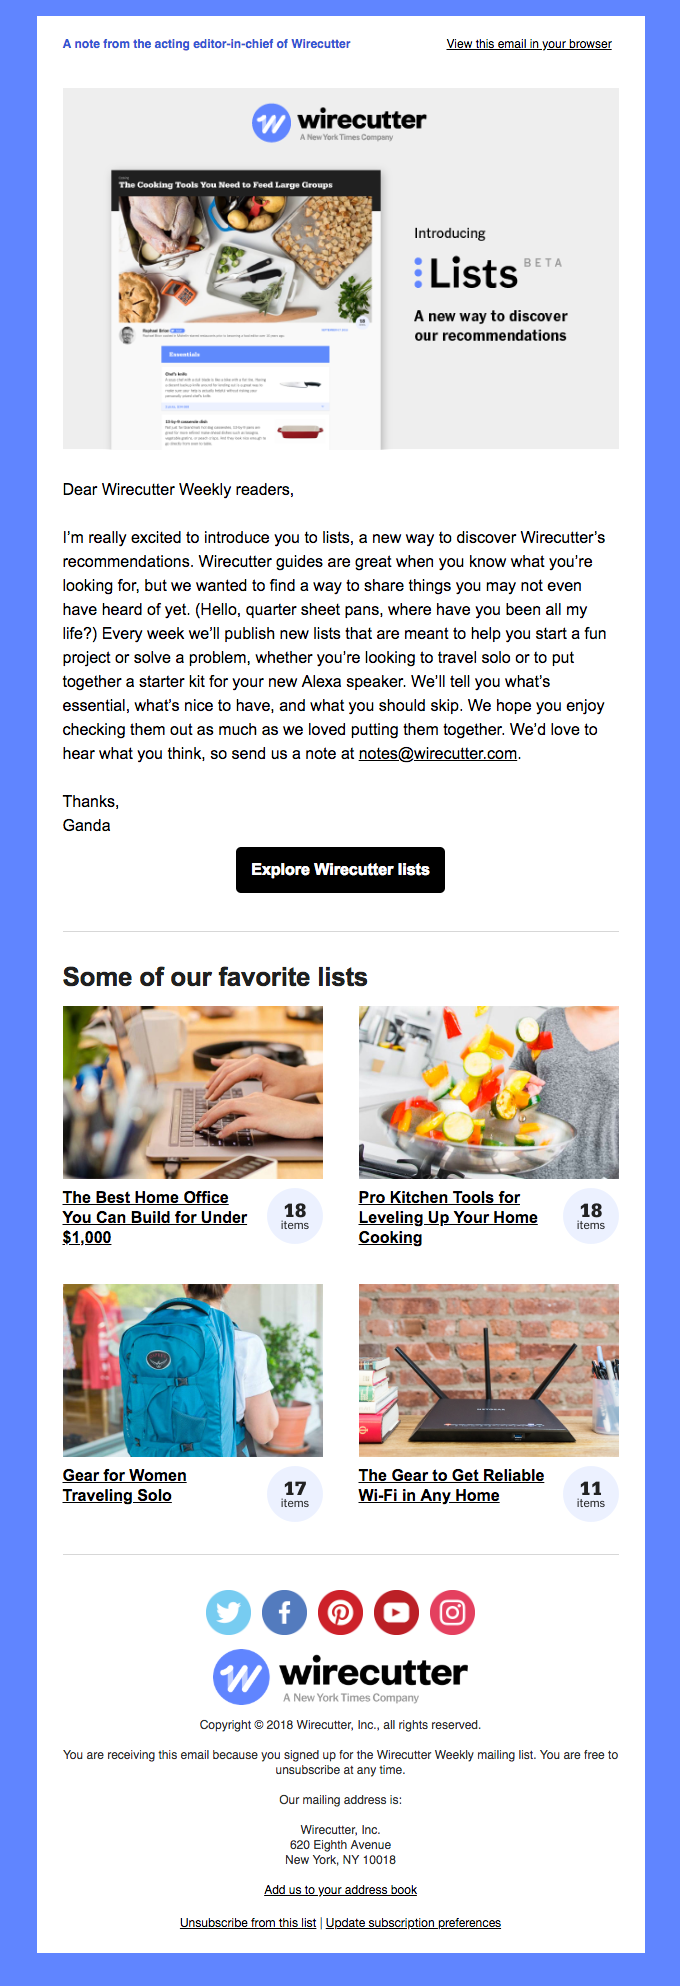 Introducing Lists: A note from the acting editor-in-chief of Wirecutter